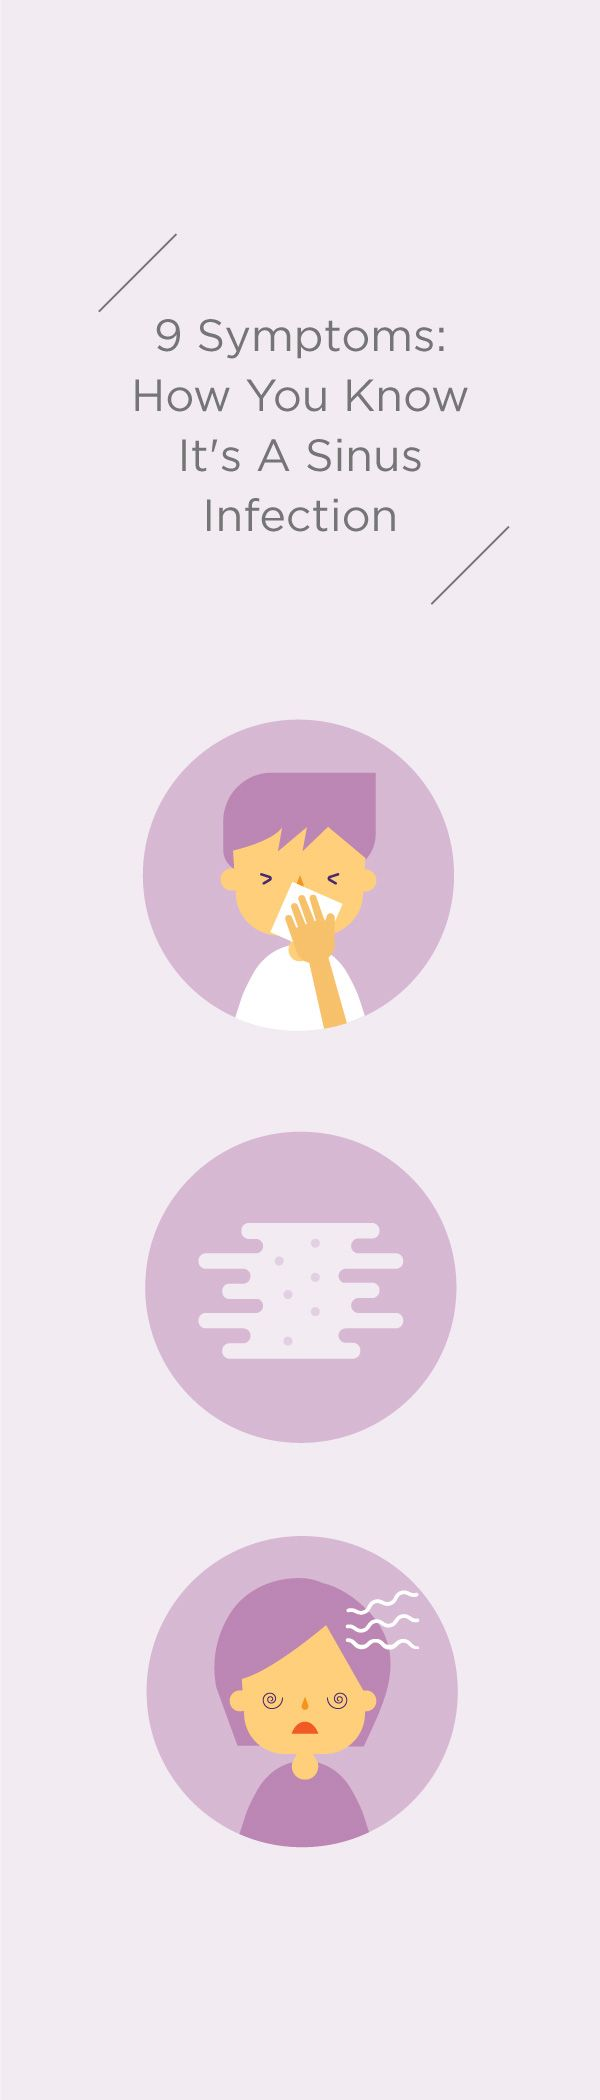 Know how to detect a sinus infection with using this easy to use guide. Know what to look for in the pain, discharge, and congestion levels as well as other key symptoms of a sinus infection. Save this pin for when you're under the weather!